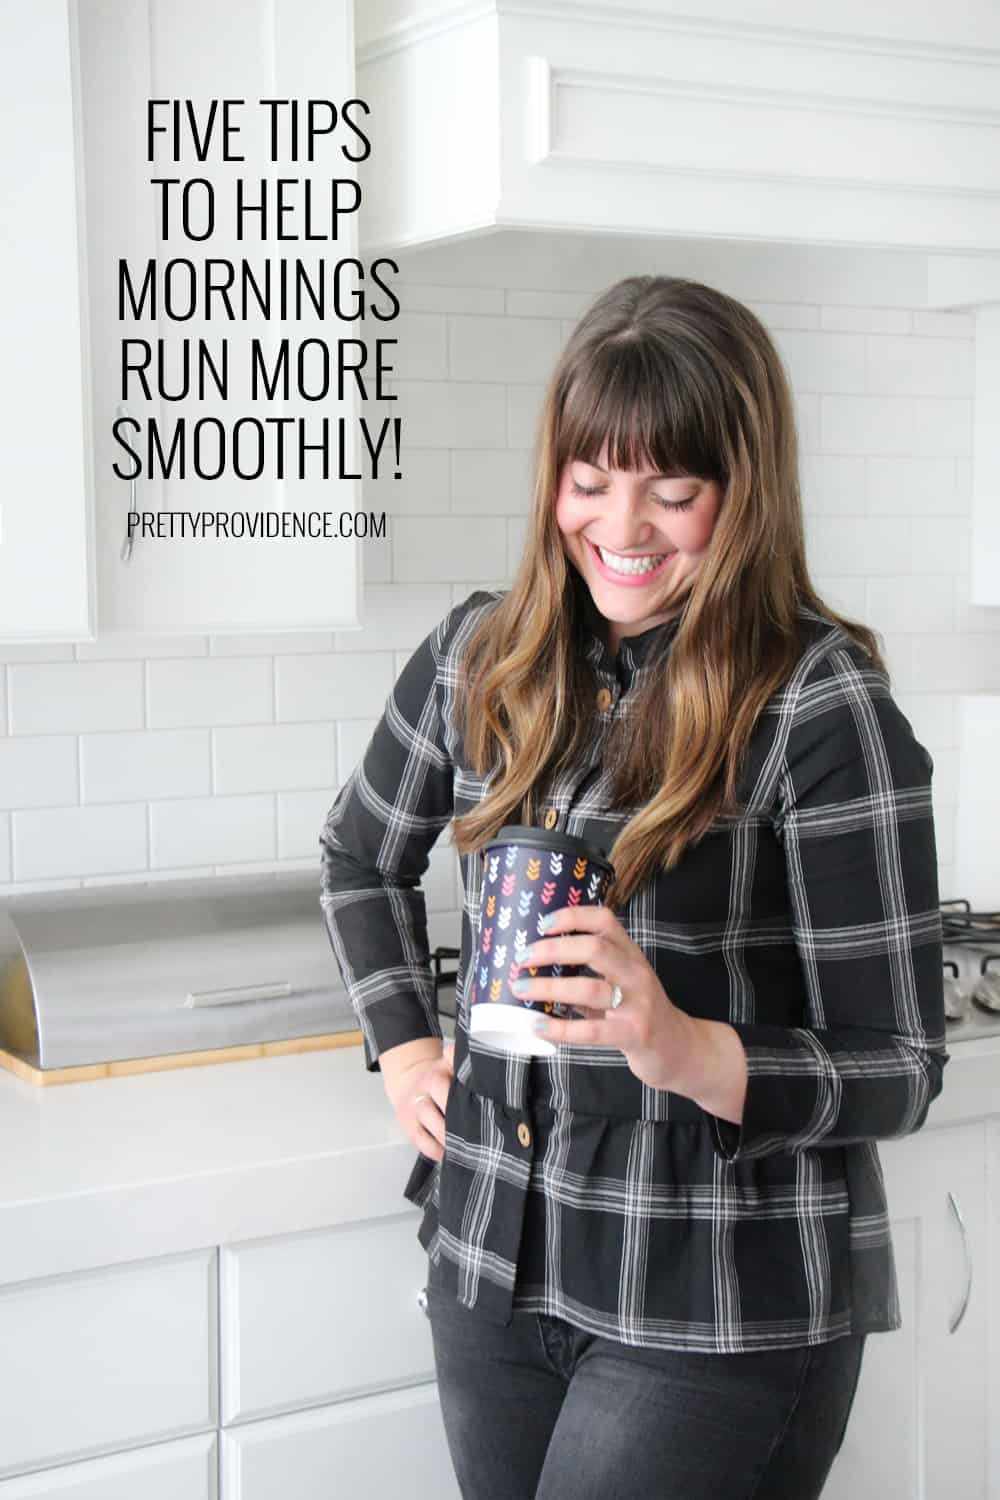 Five tips to help mornings to smoother! I love all these tips, every little bit helps!